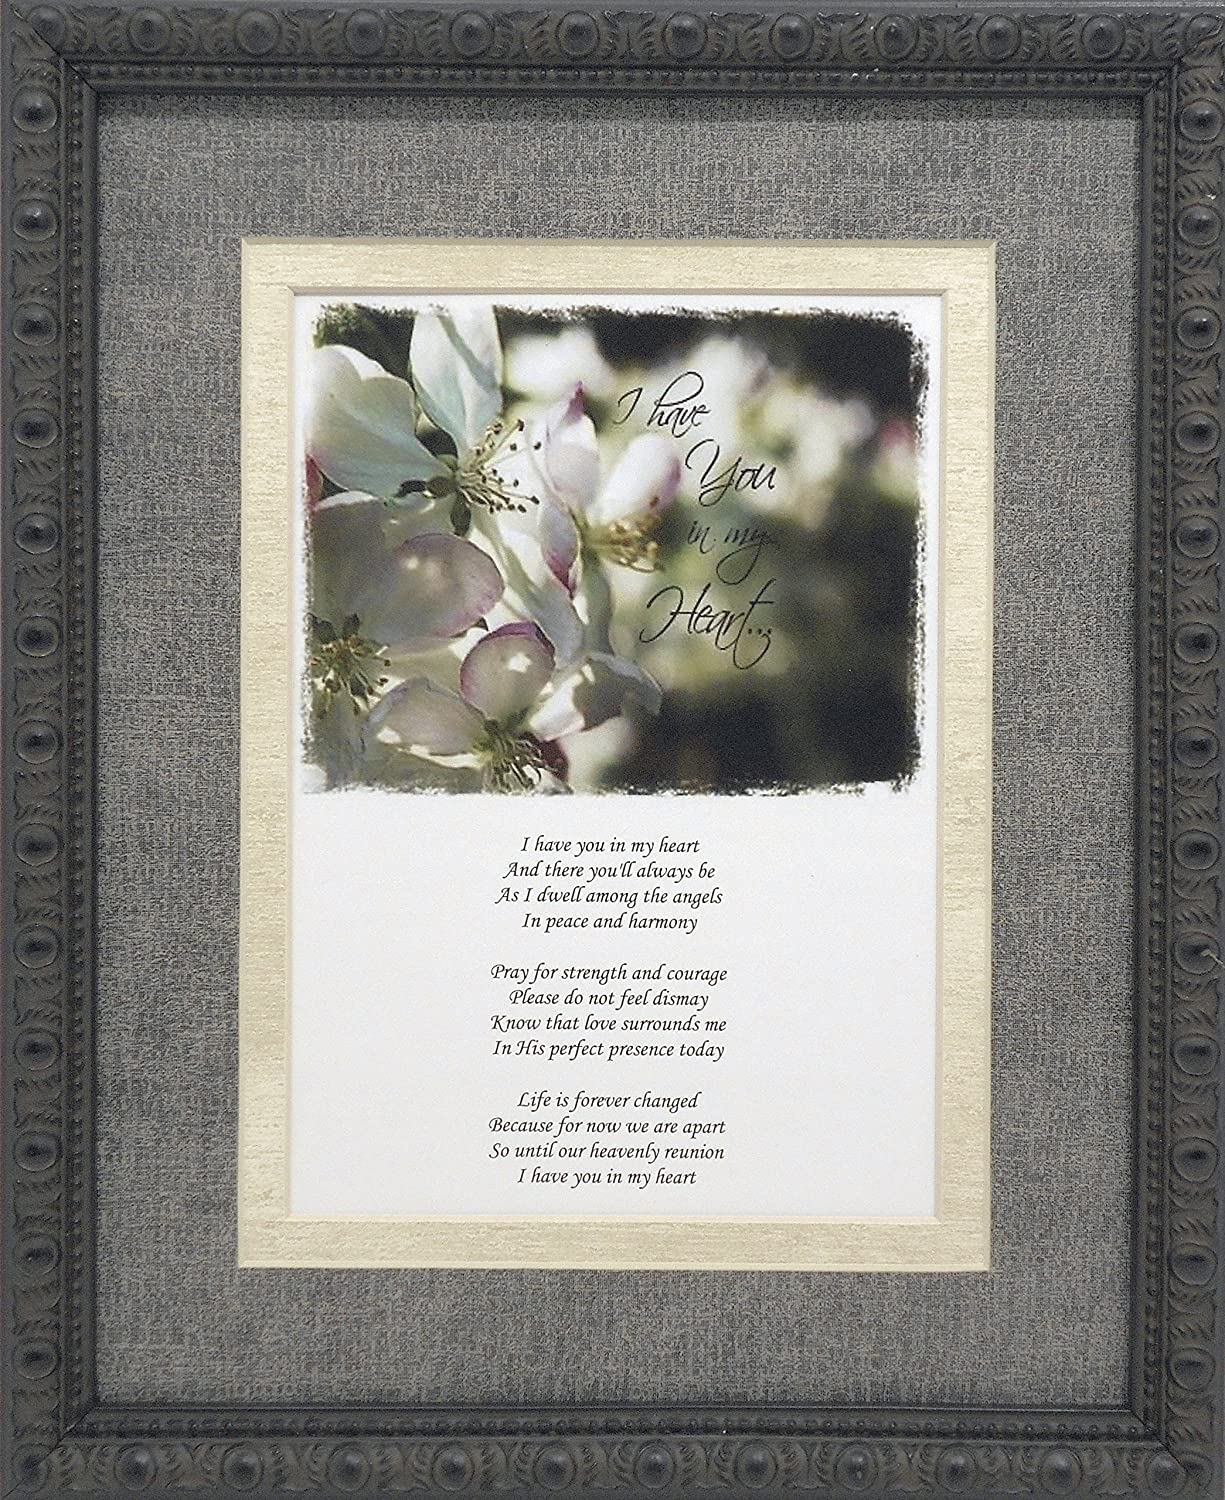 Amazon unique sympathy gift idea send to a funeral or amazon unique sympathy gift idea send to a funeral or residence of the grieving i have you in my heart memorial poem izmirmasajfo